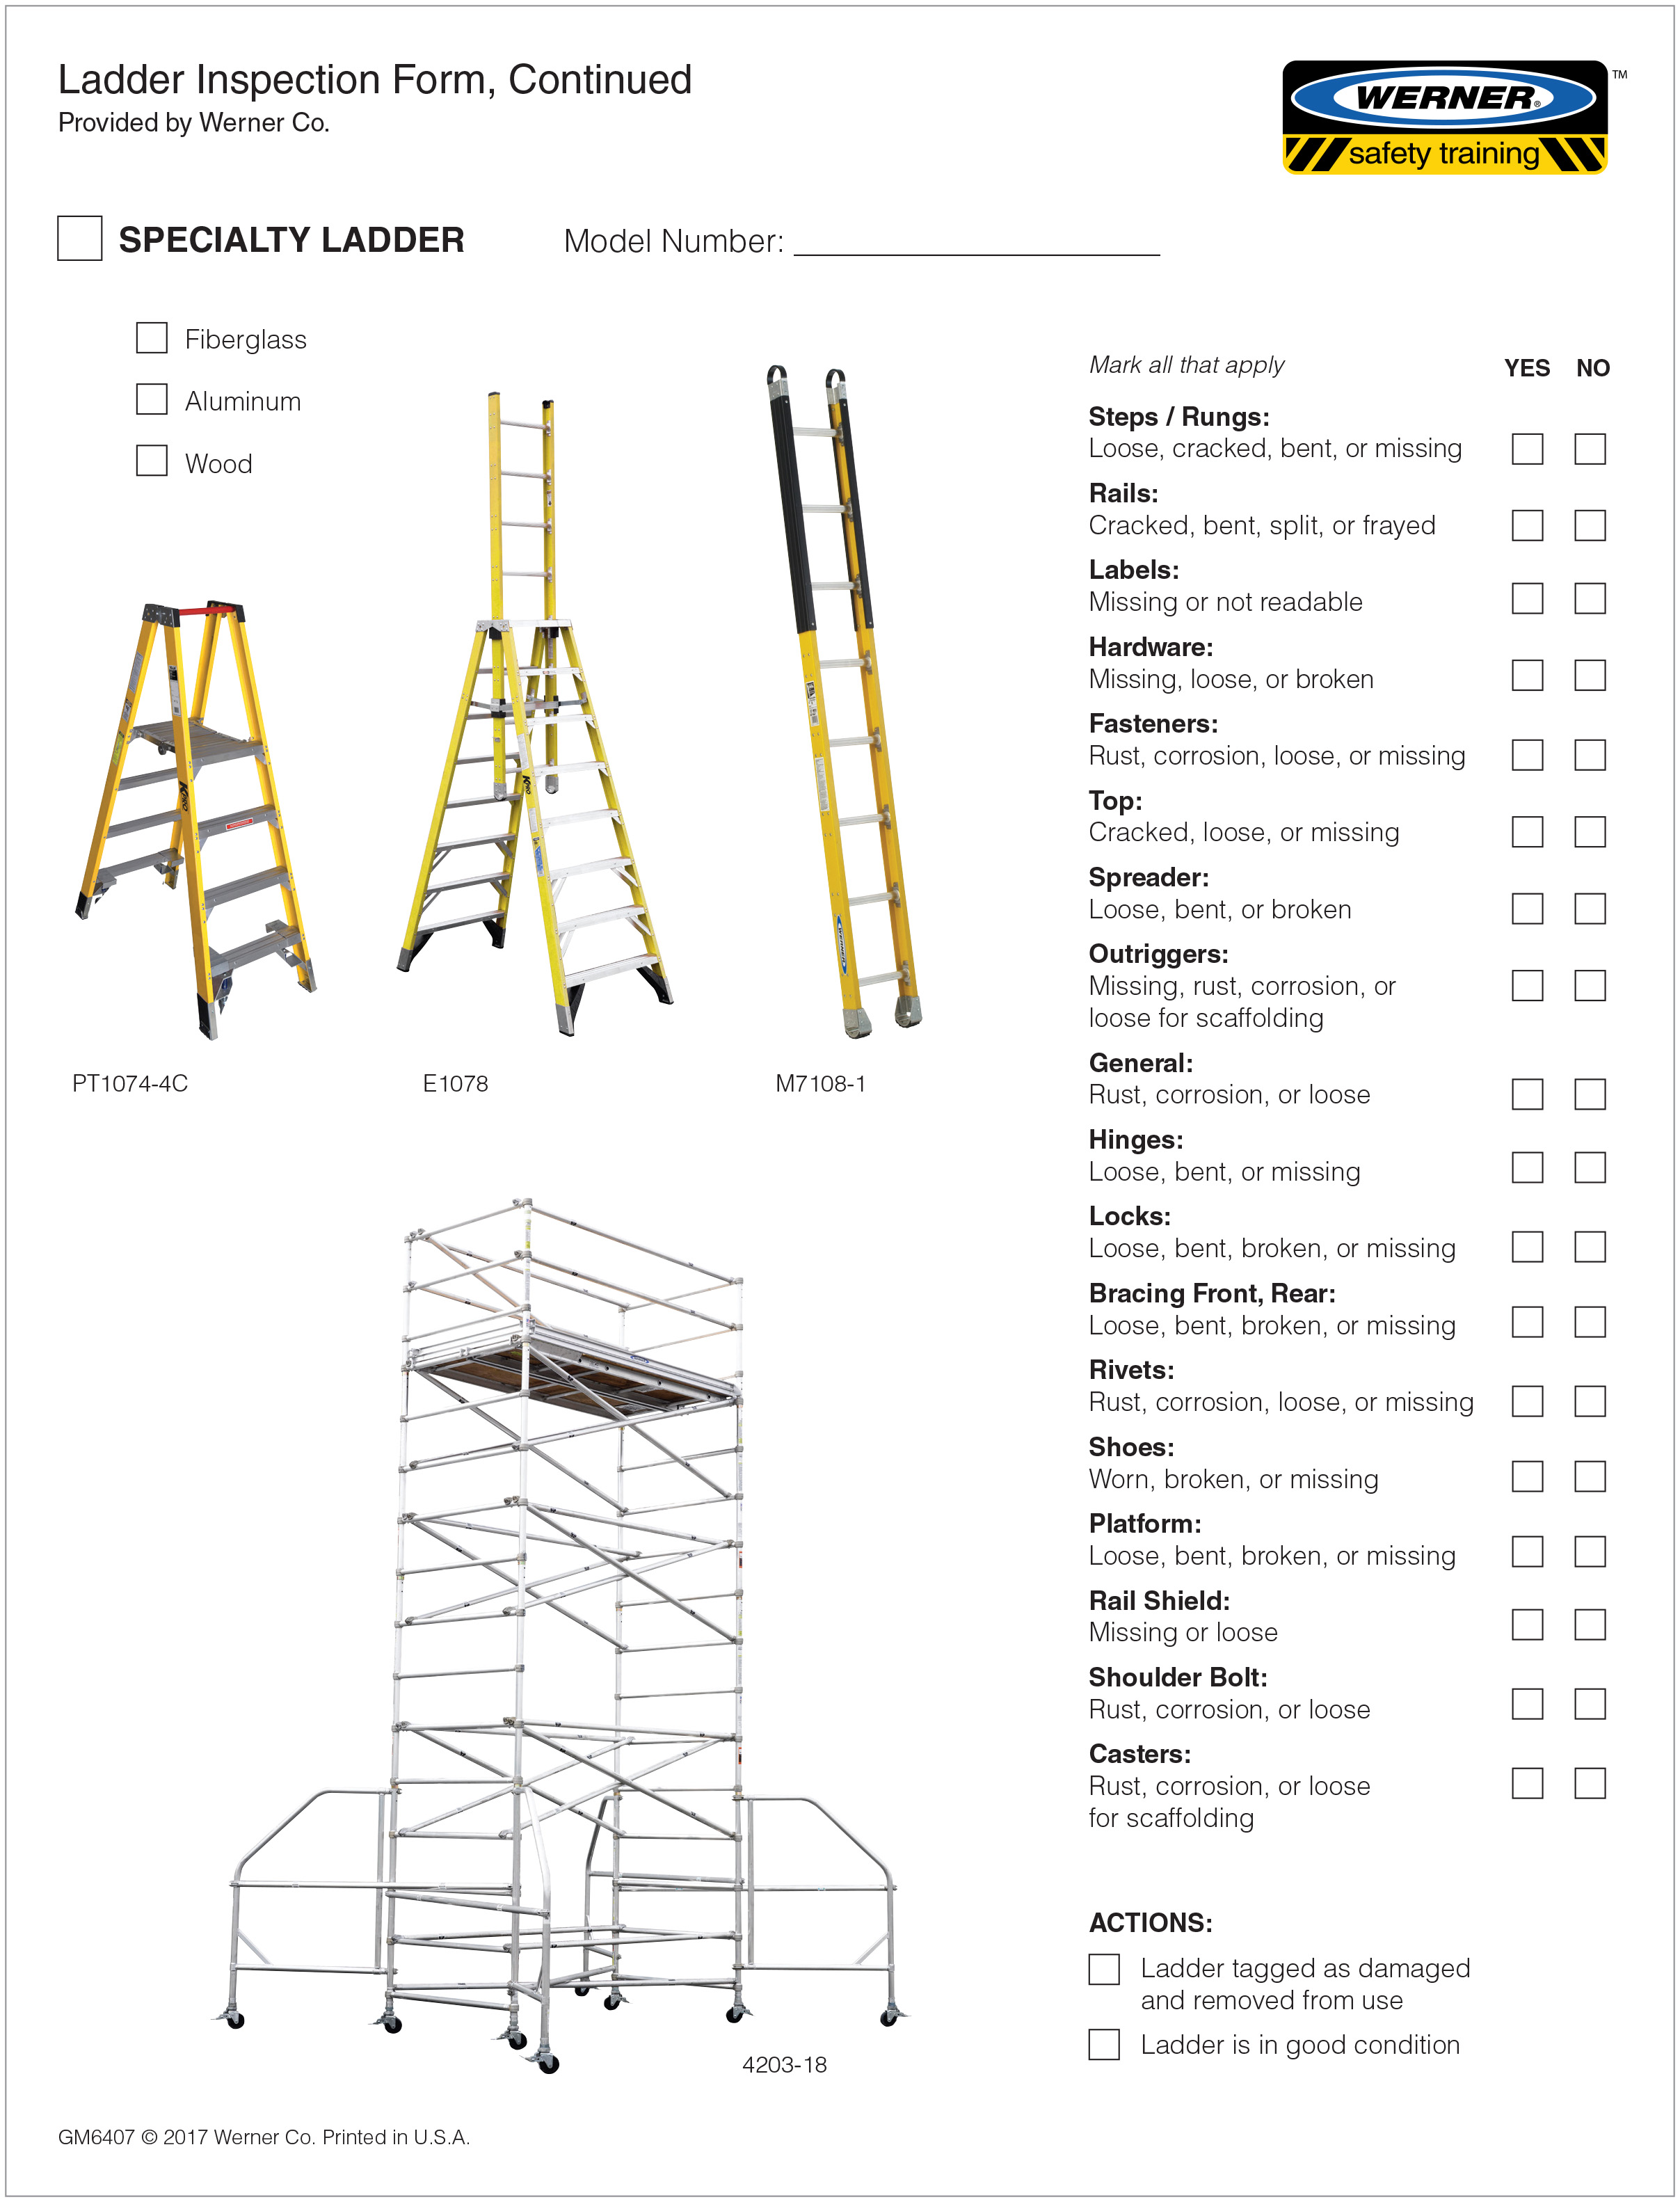 2018-ladder-safety-inspection-form-2.jpg